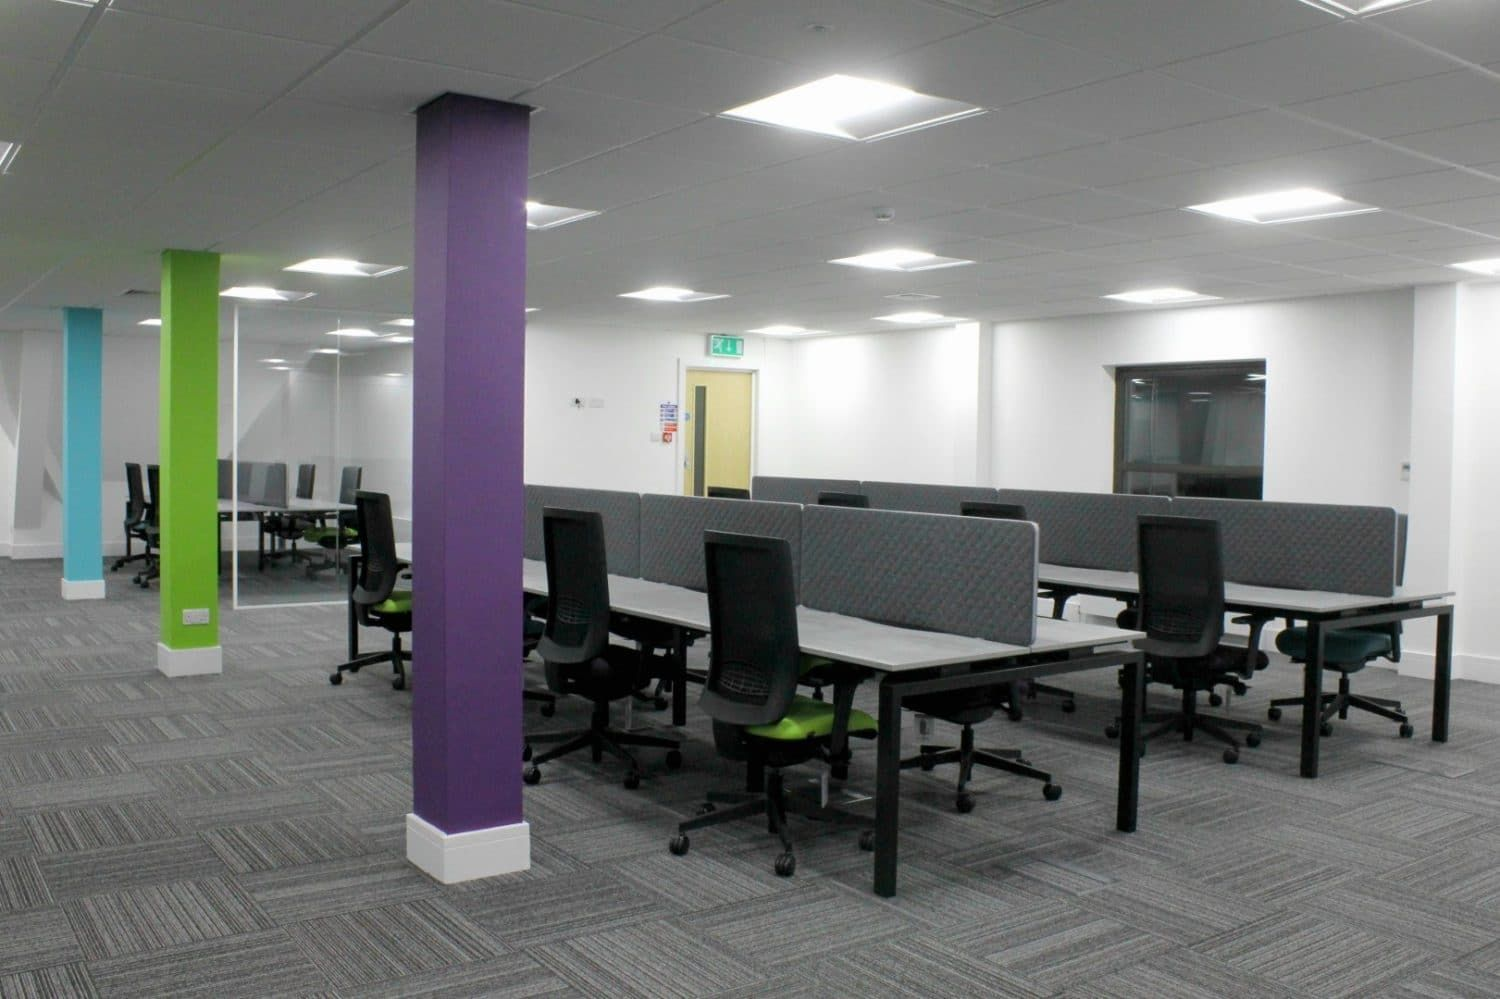 Three Workplace Pillars Painted In Purple Blue And Lime Interiordesign Officefit Office Interior Design Commercial Interior Design Interior Design Companies